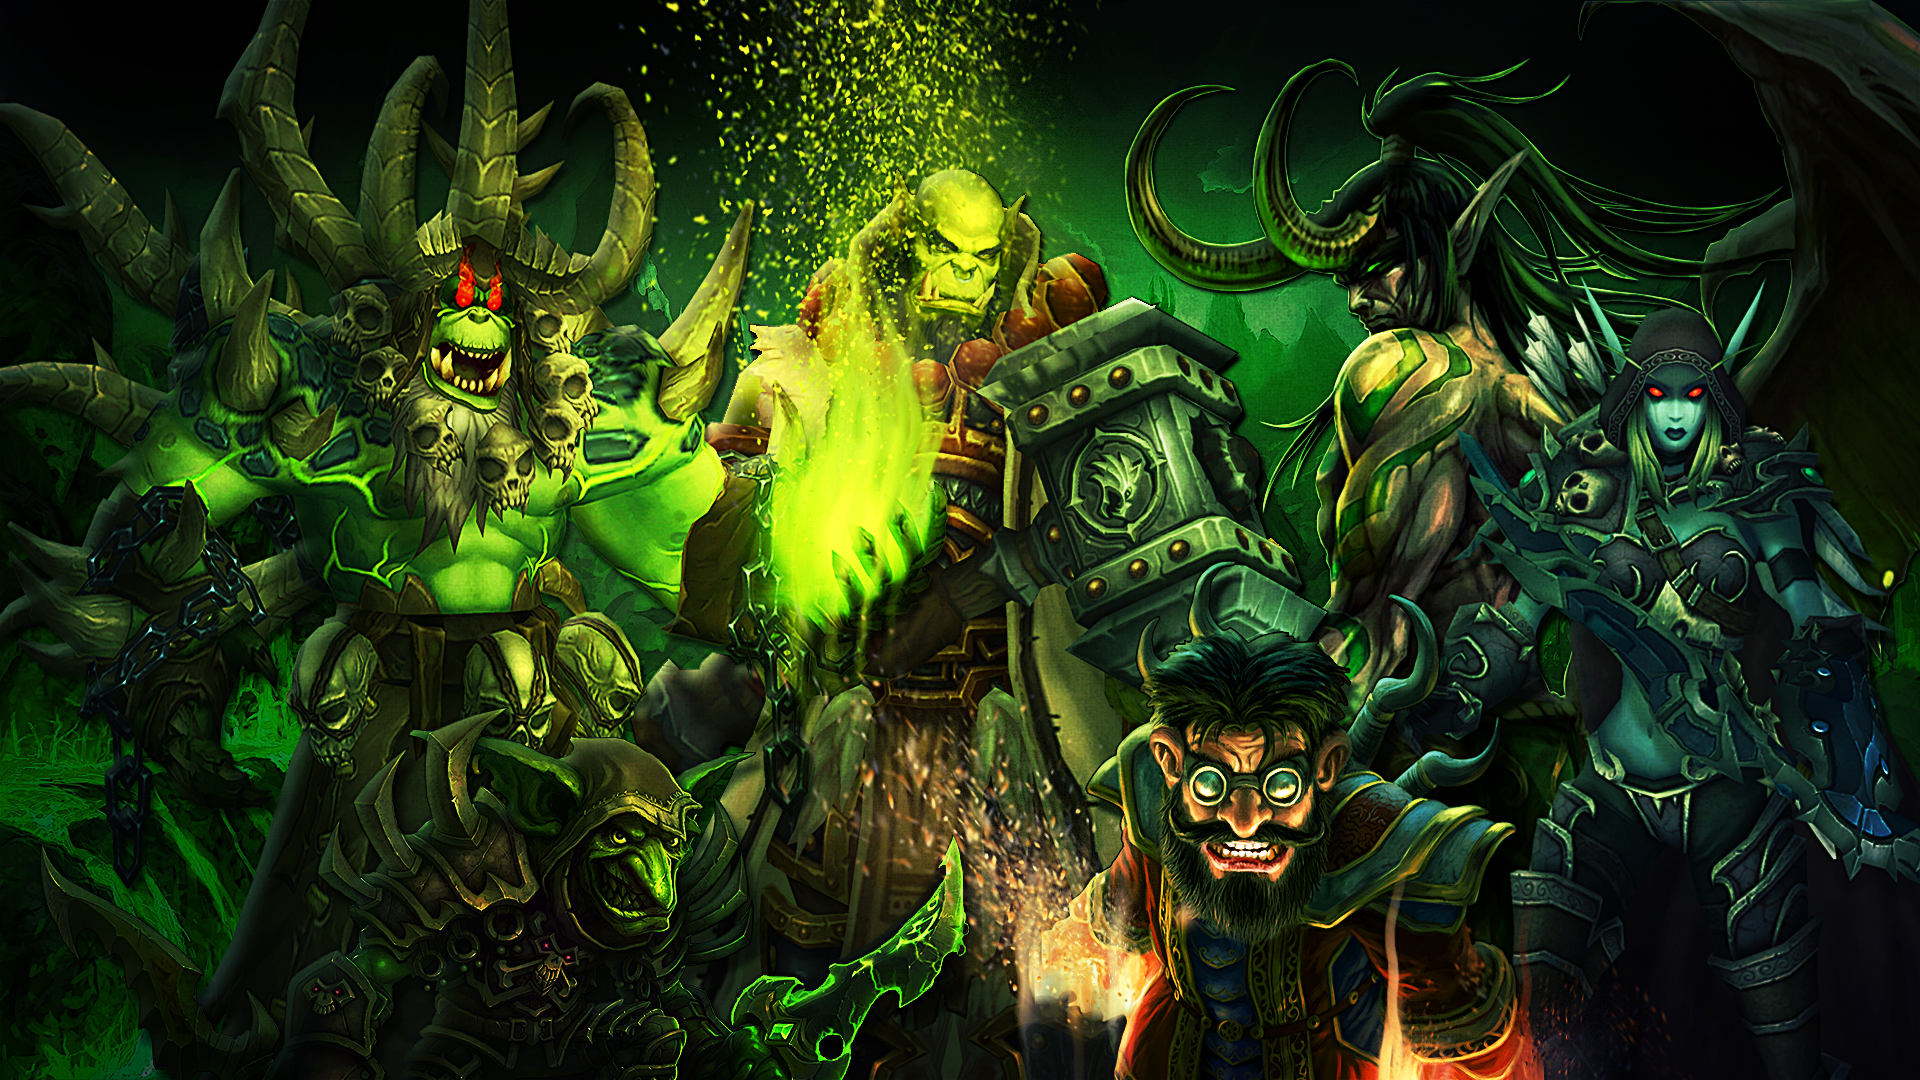 Warlock Wallpaper Wow Posted By Ethan Sellers